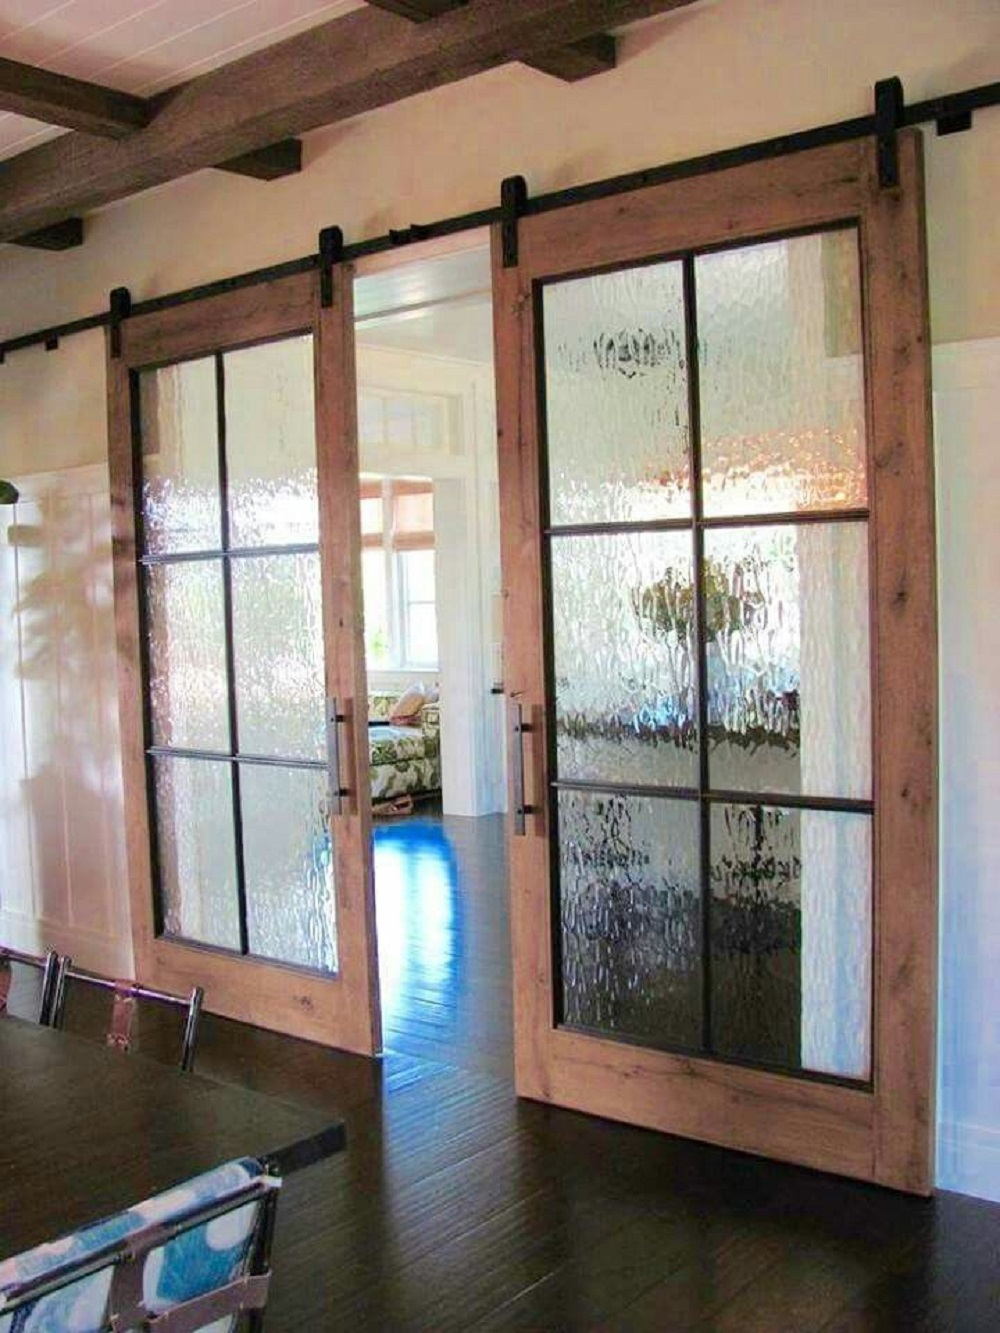 rg8 How to use rain glass creatively in your home